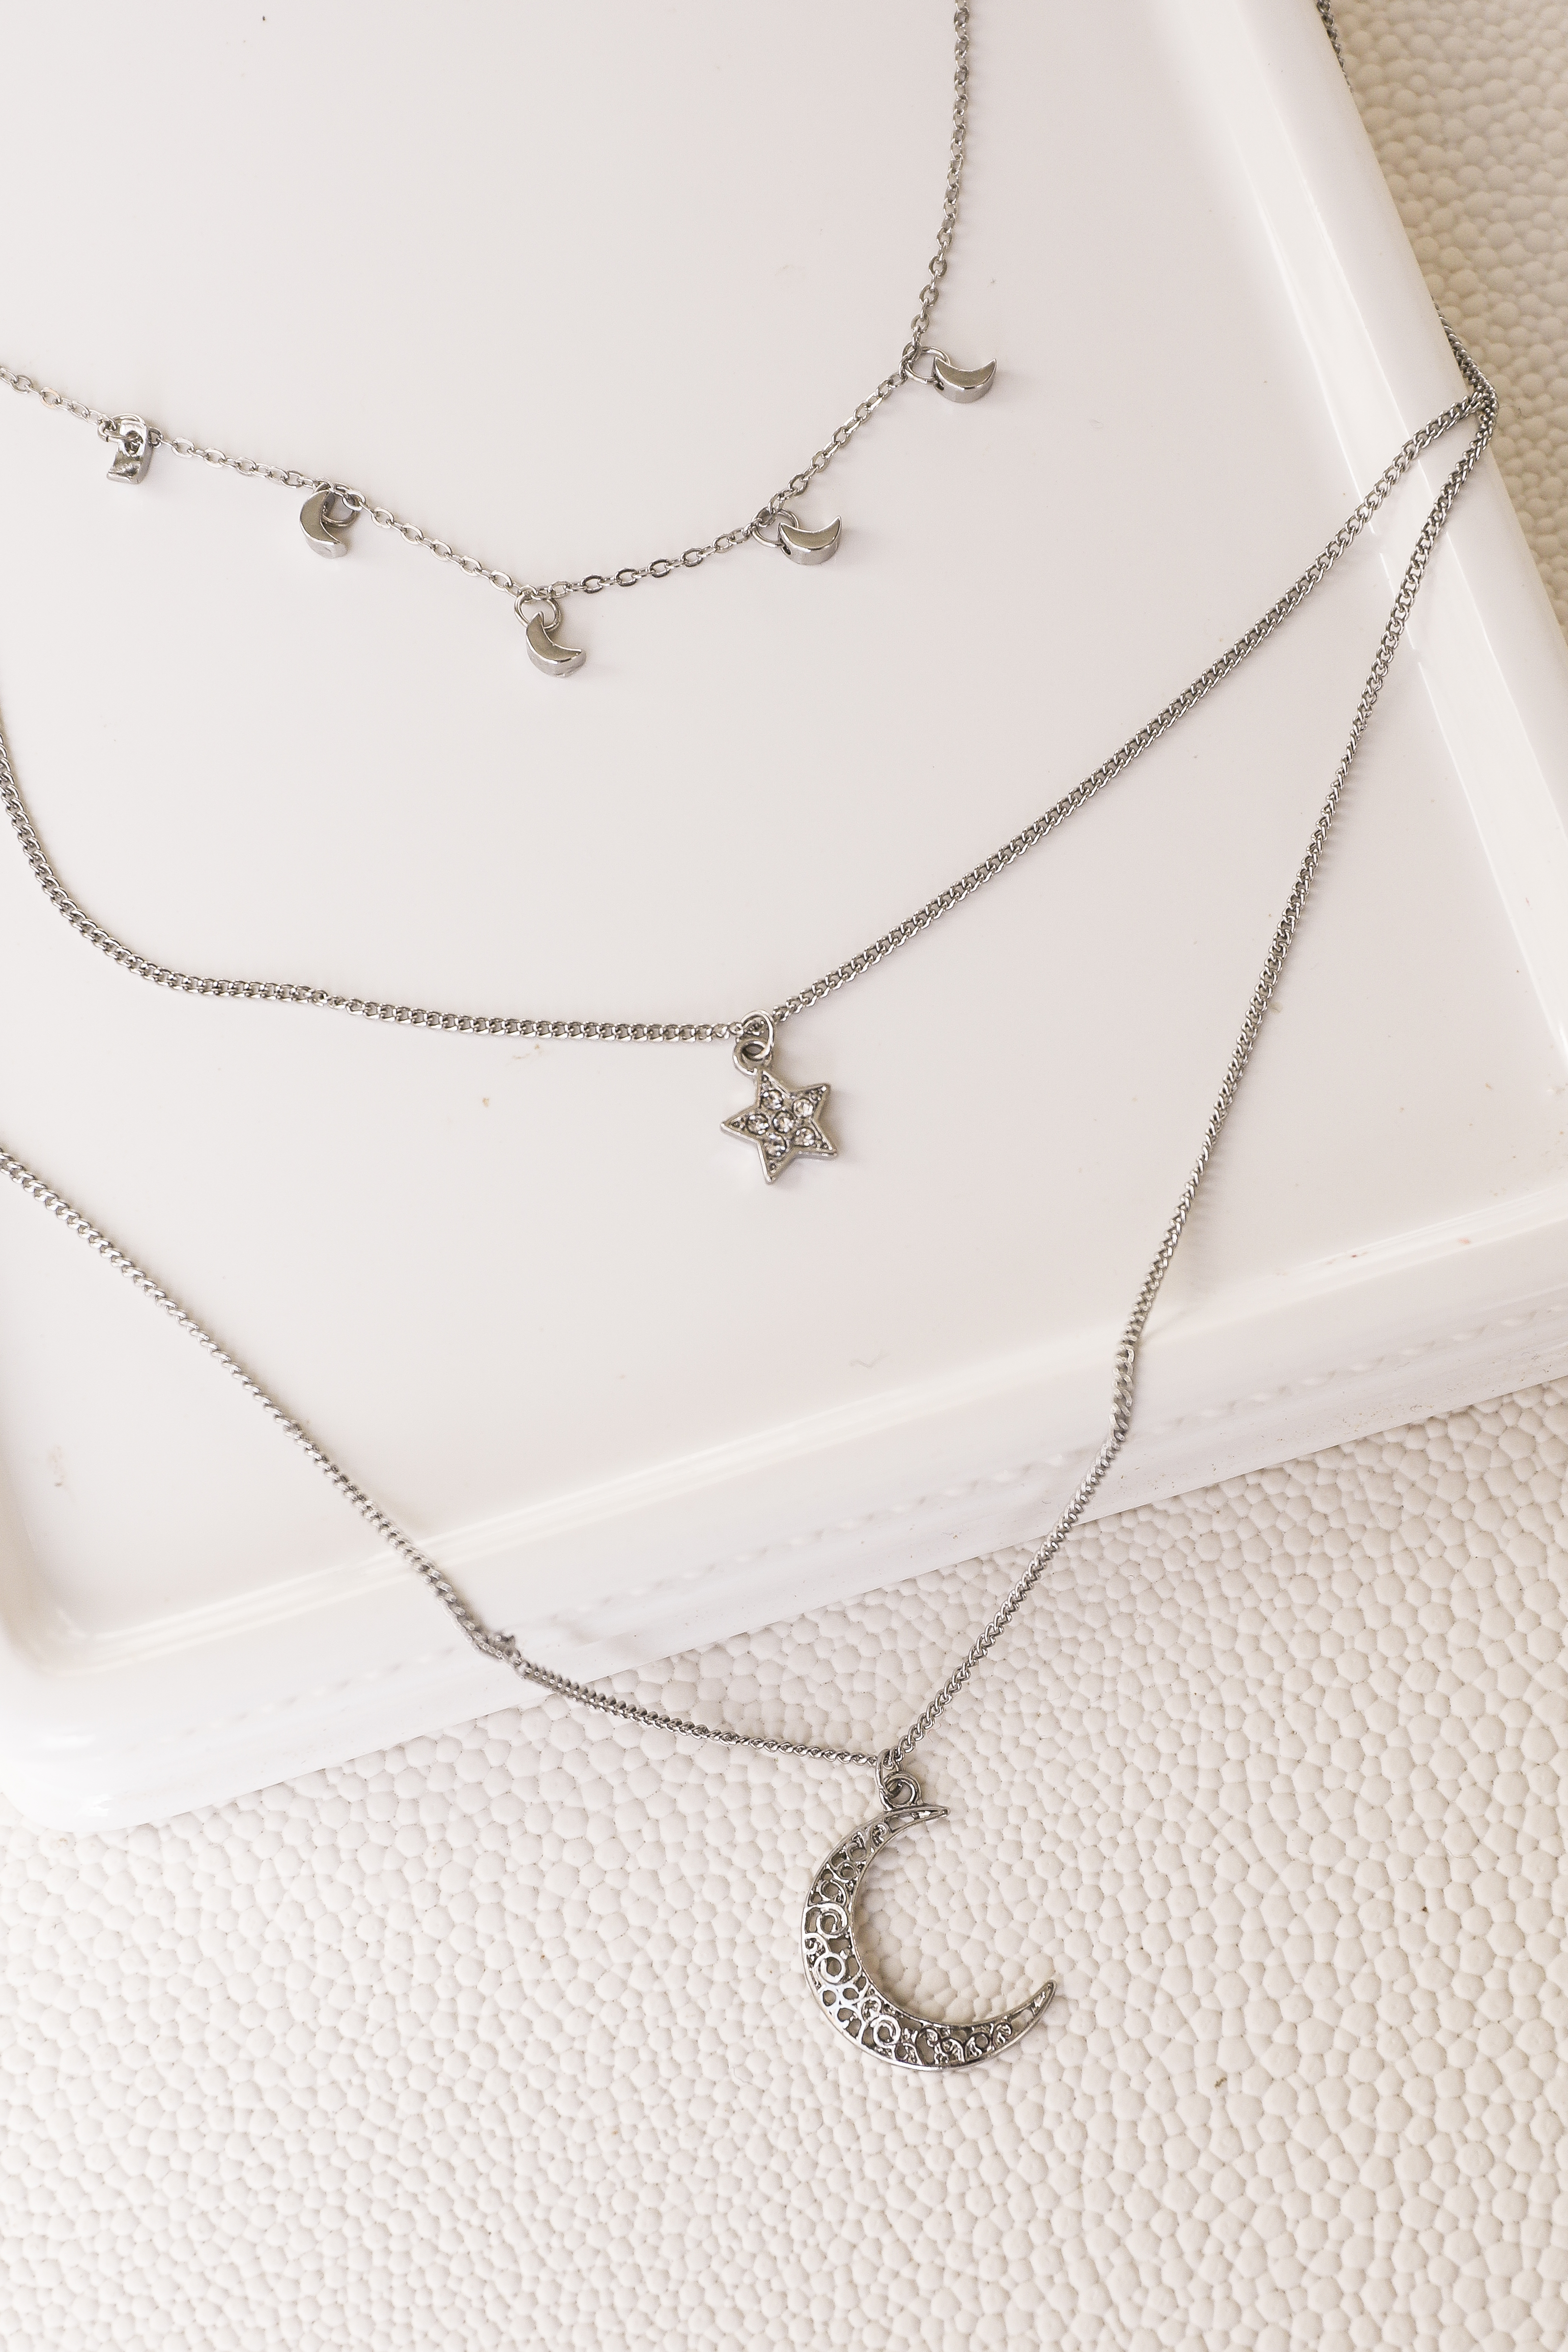 Silver Layered Necklace with Moon and Star Pendants